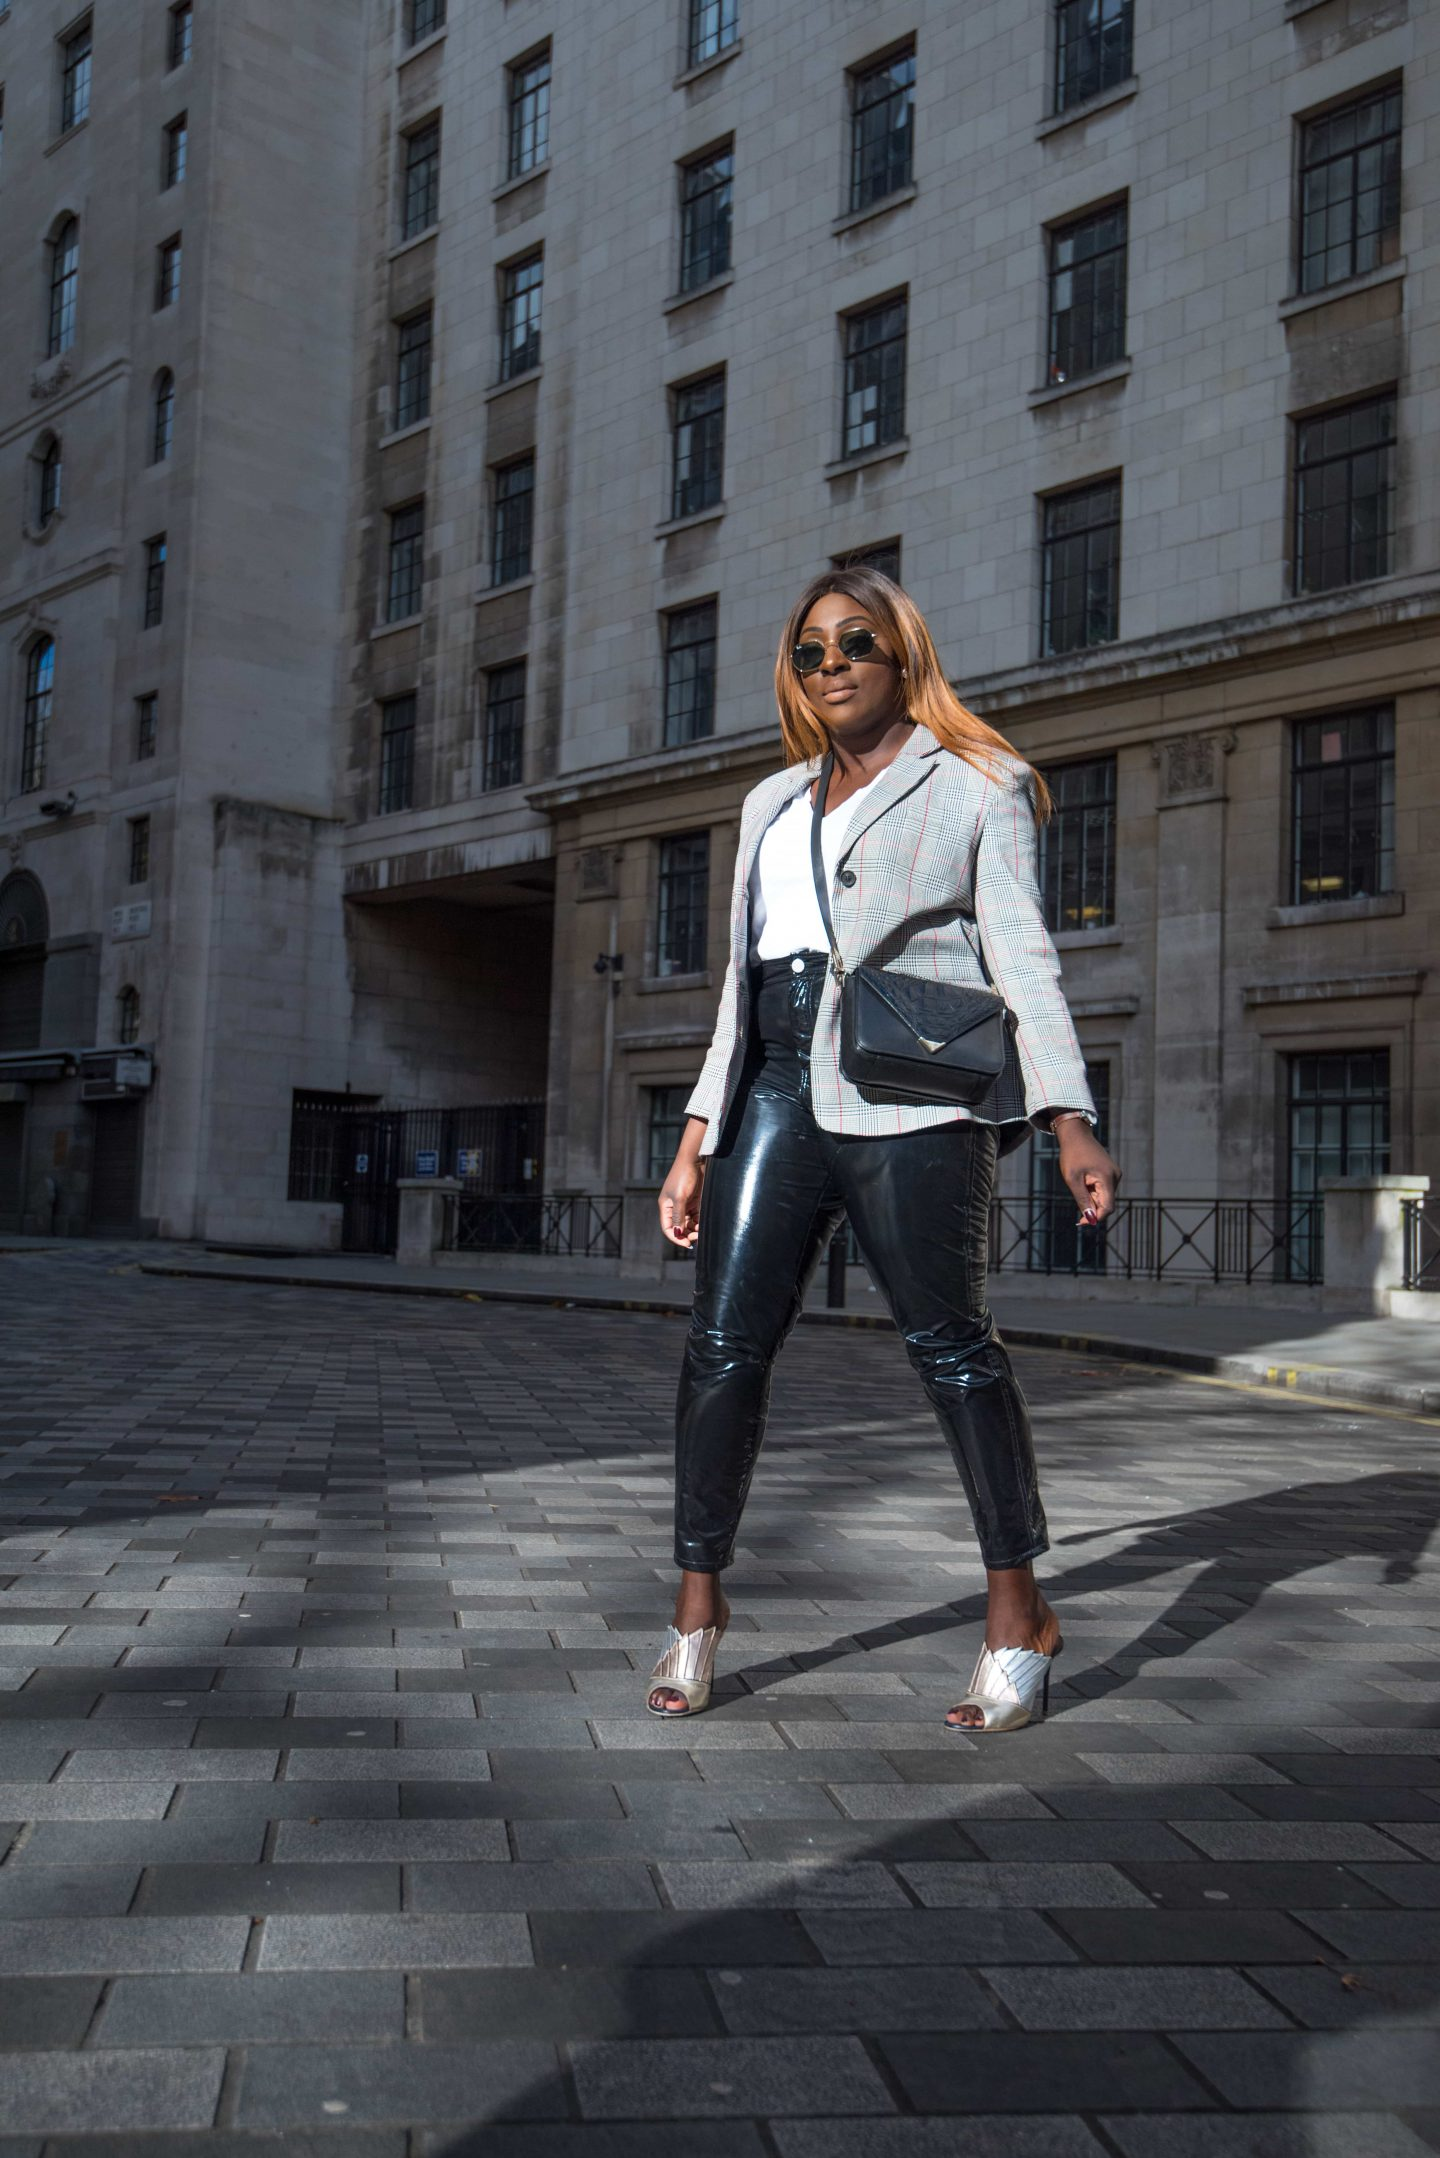 Autumn Workwear & The Vinyl Affect 4 - Zara check blazer - Alexander Wang Bag - vinyl trousers - malone soulier mules - Style and the Sass